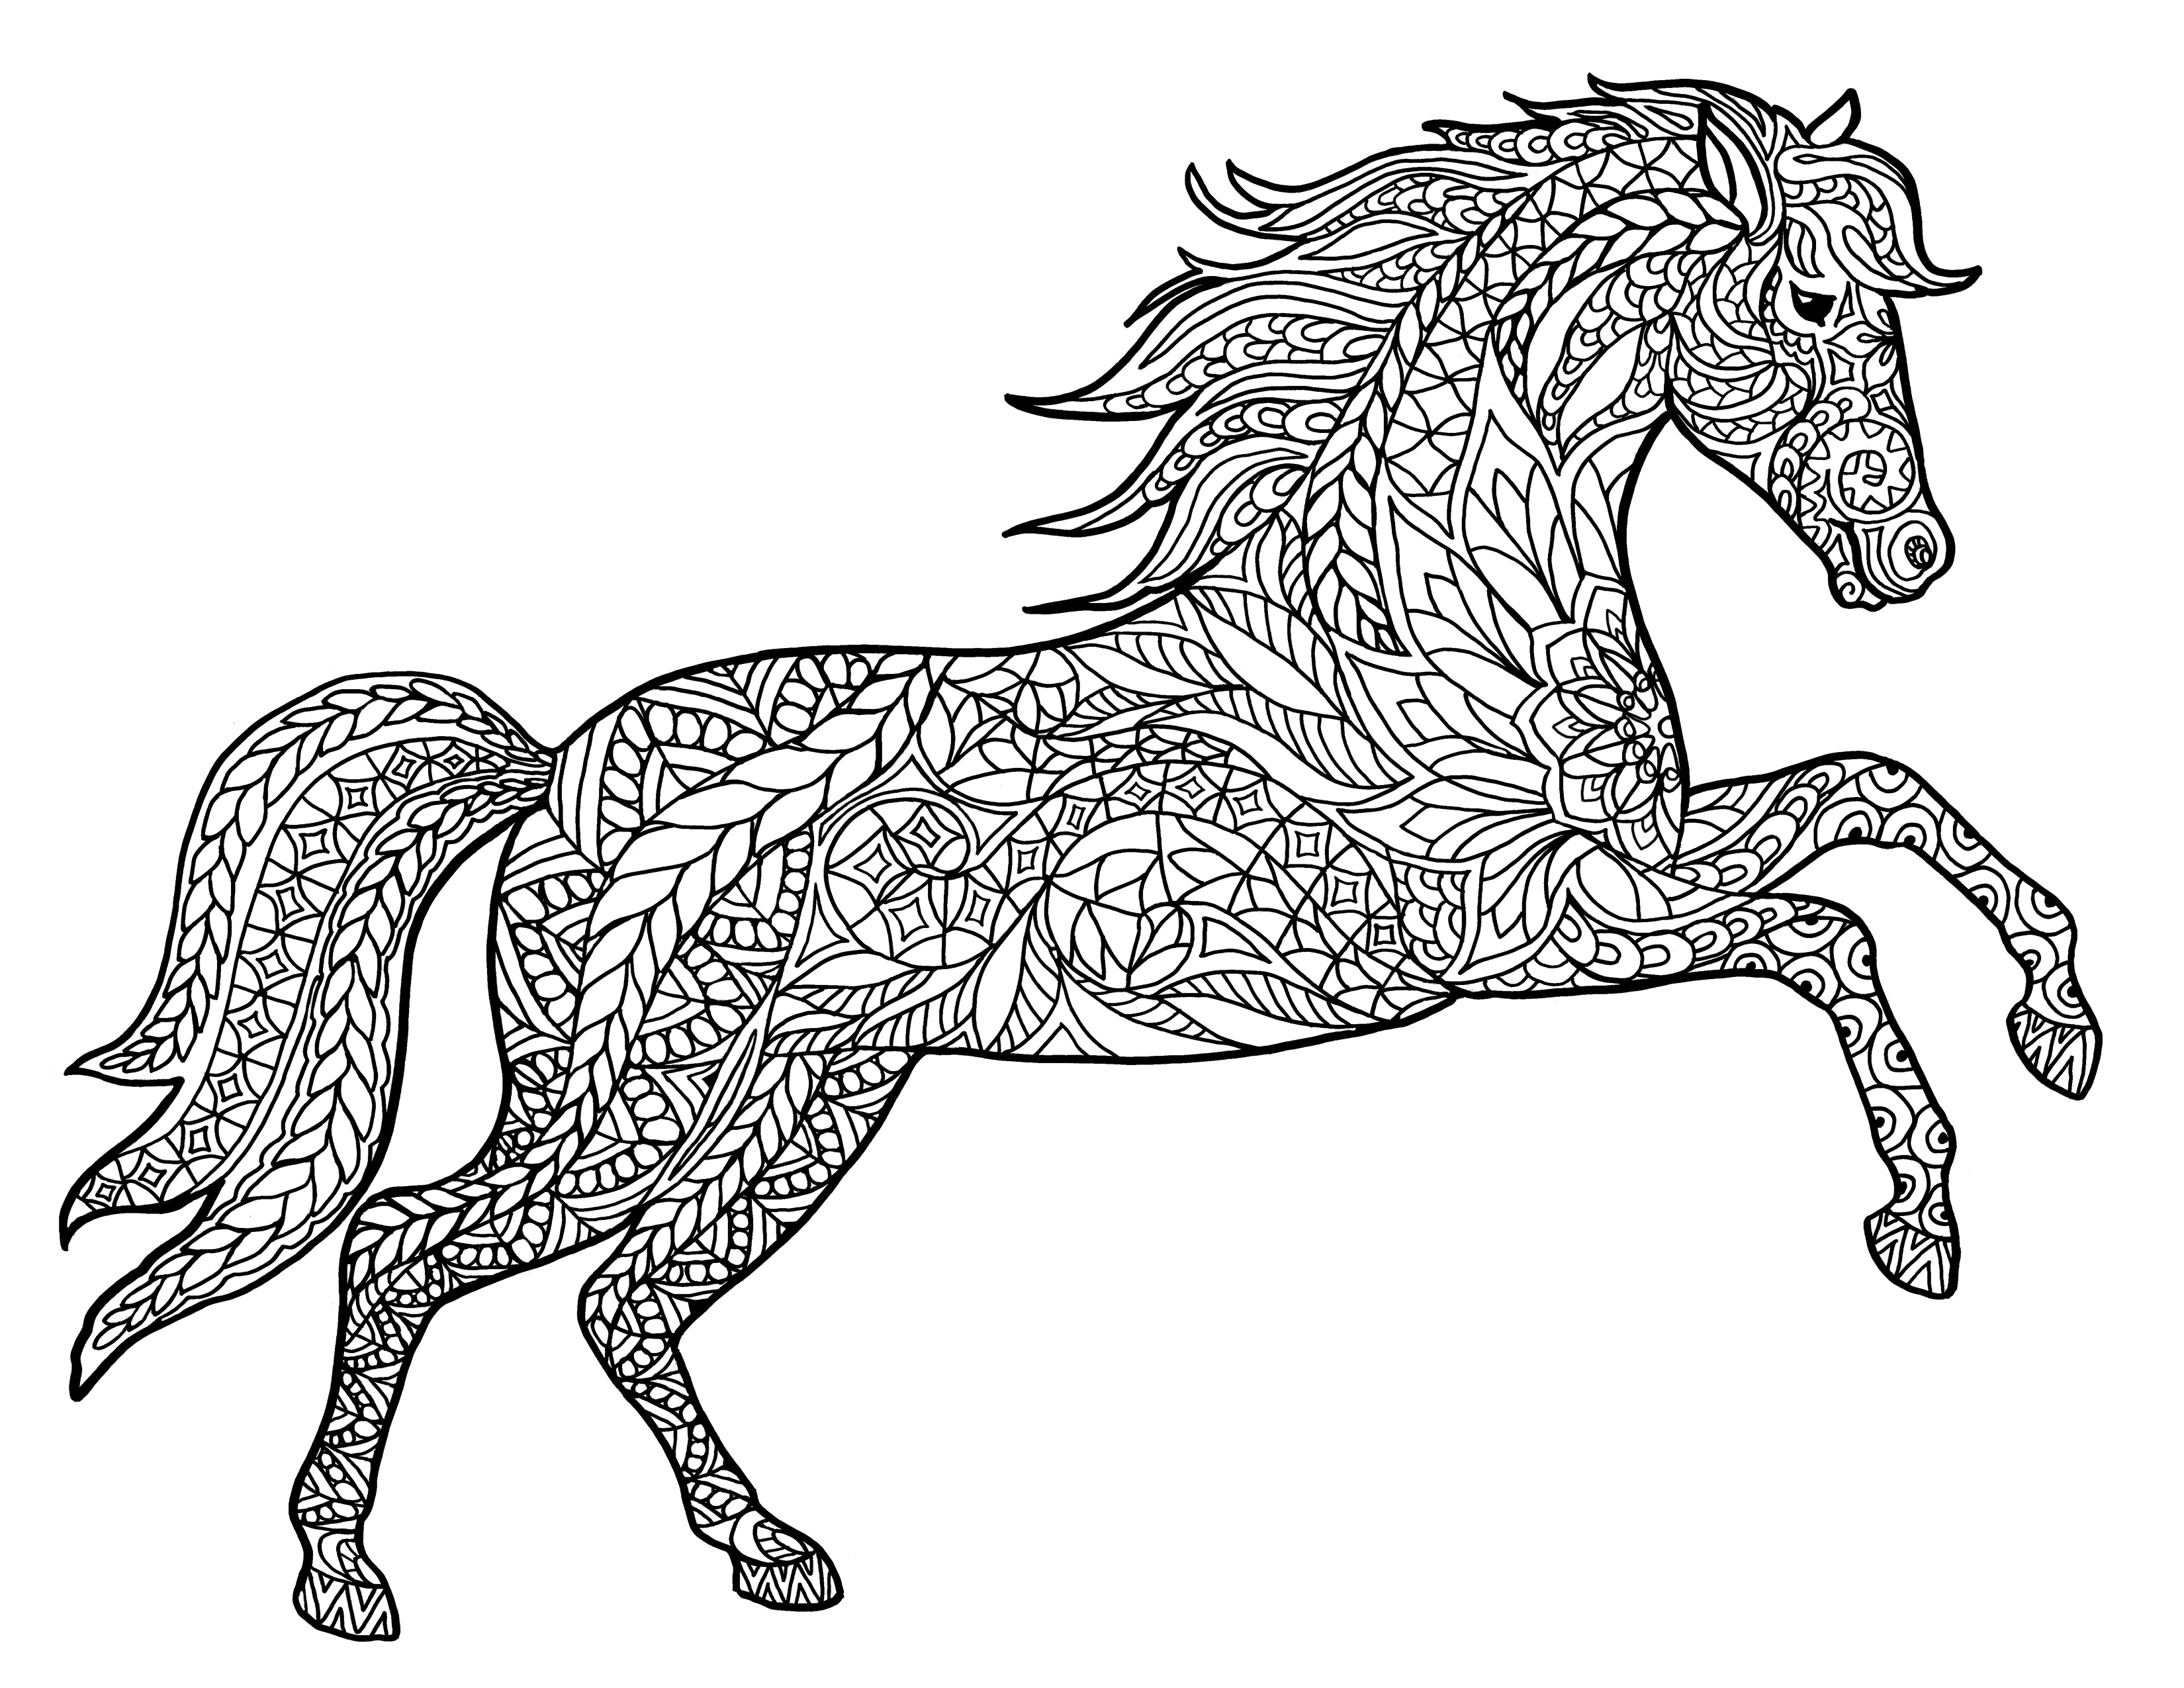 horse colouring picture free horse coloring pages horse picture colouring 1 1